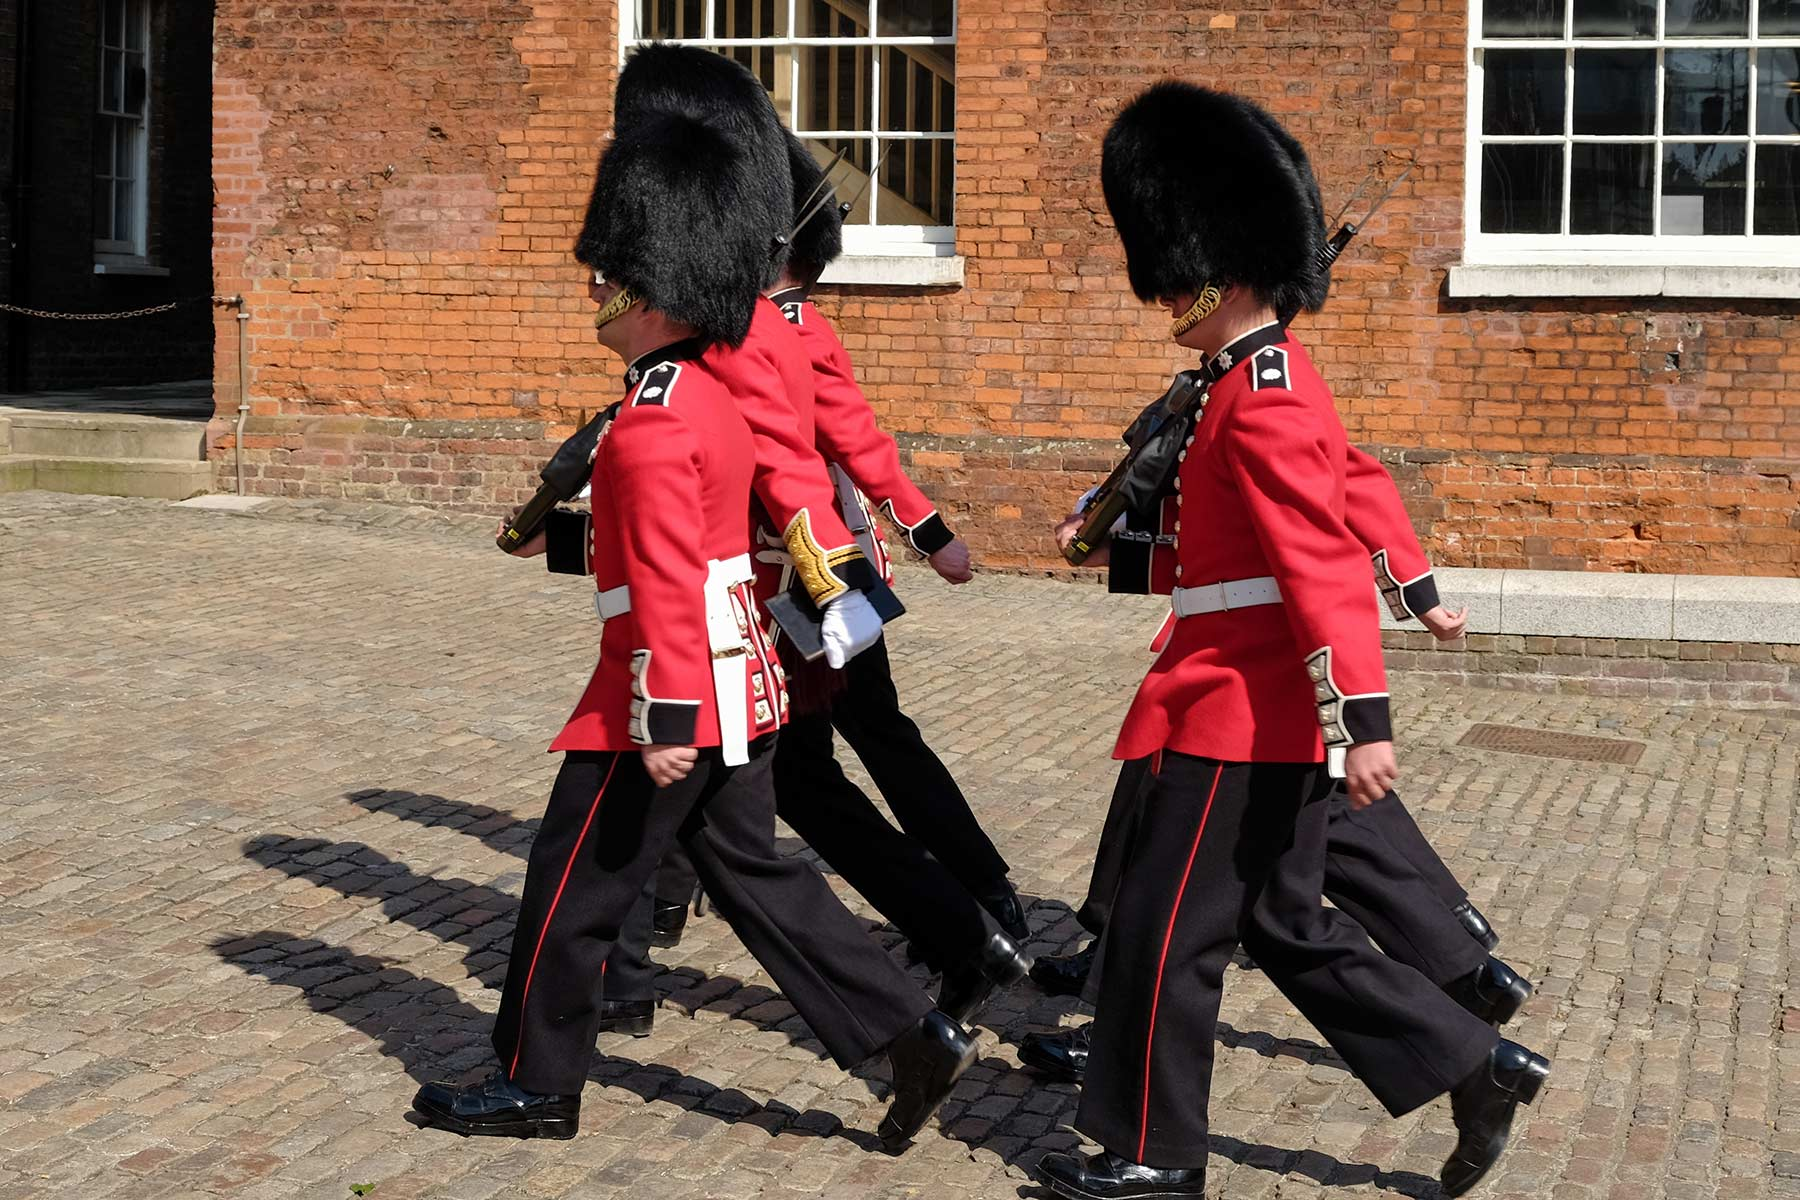 Queens Guards im Tower of London in London, England